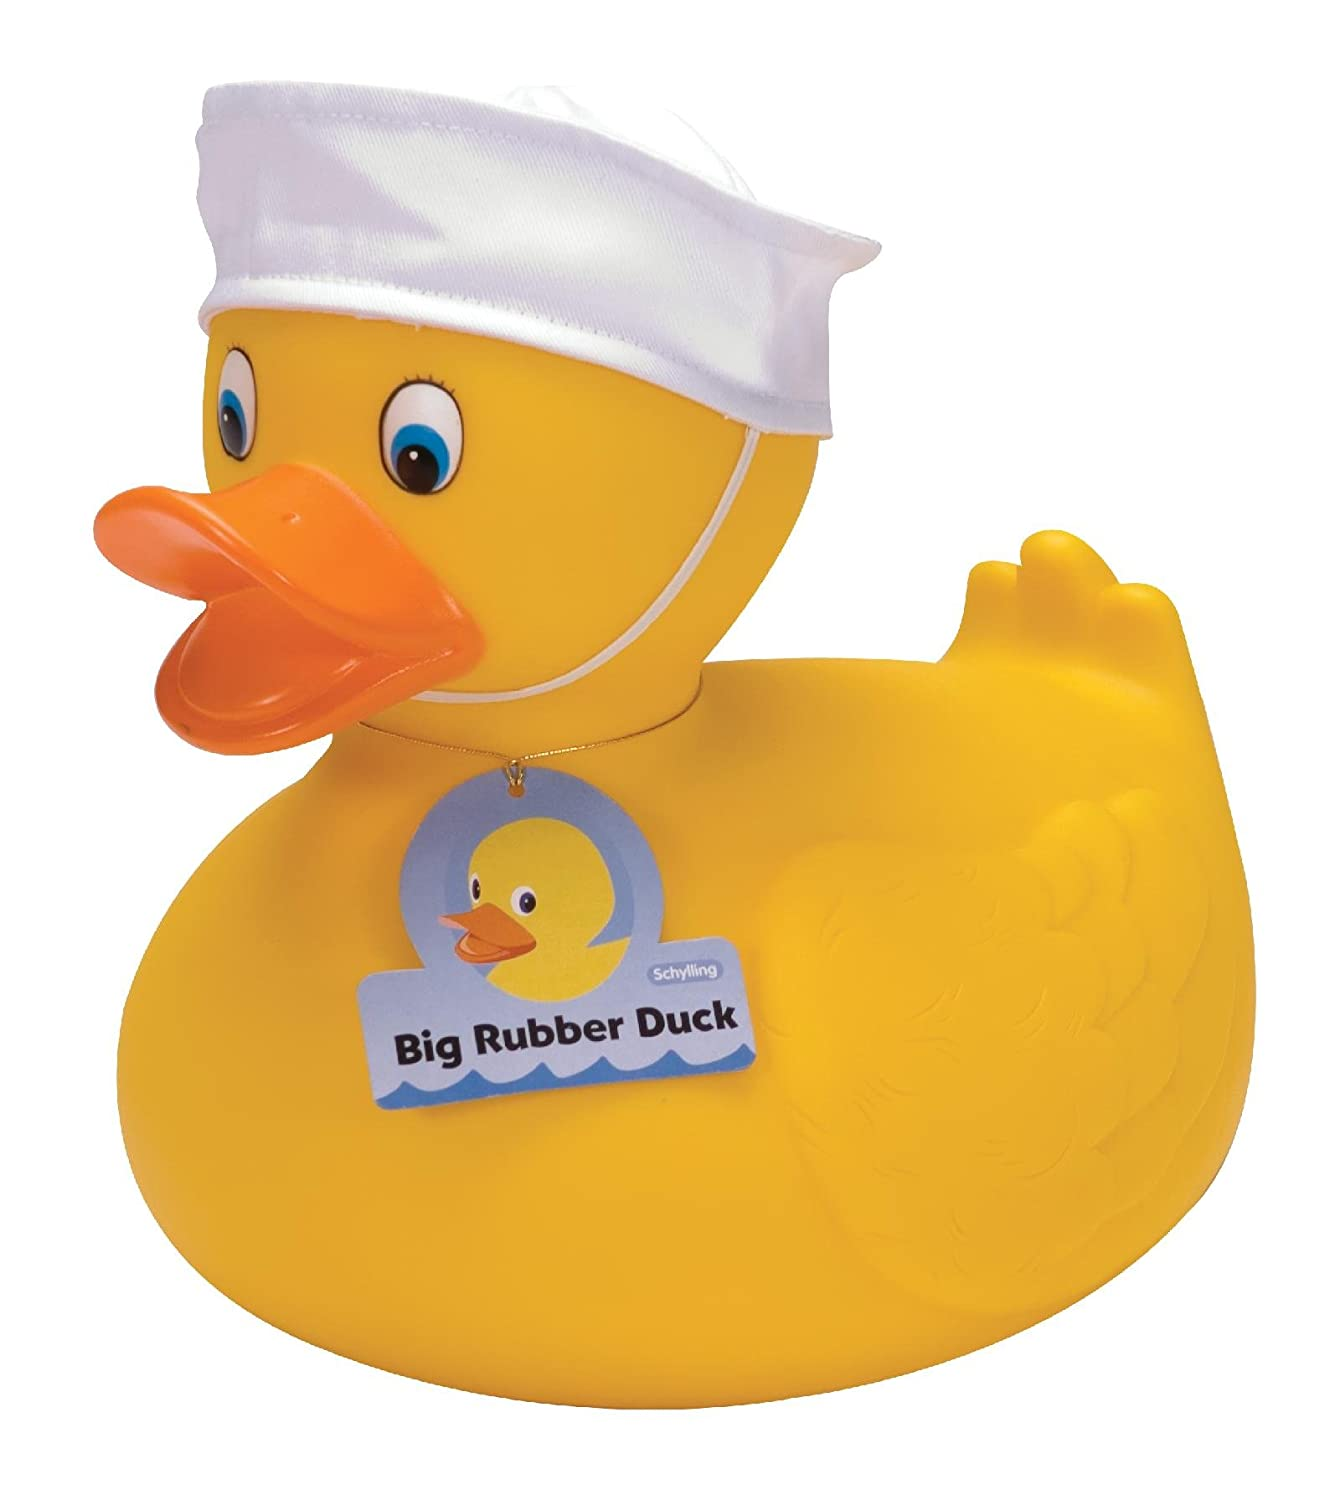 Amazon.com: Schylling Large Rubber Duck: Toys & Games